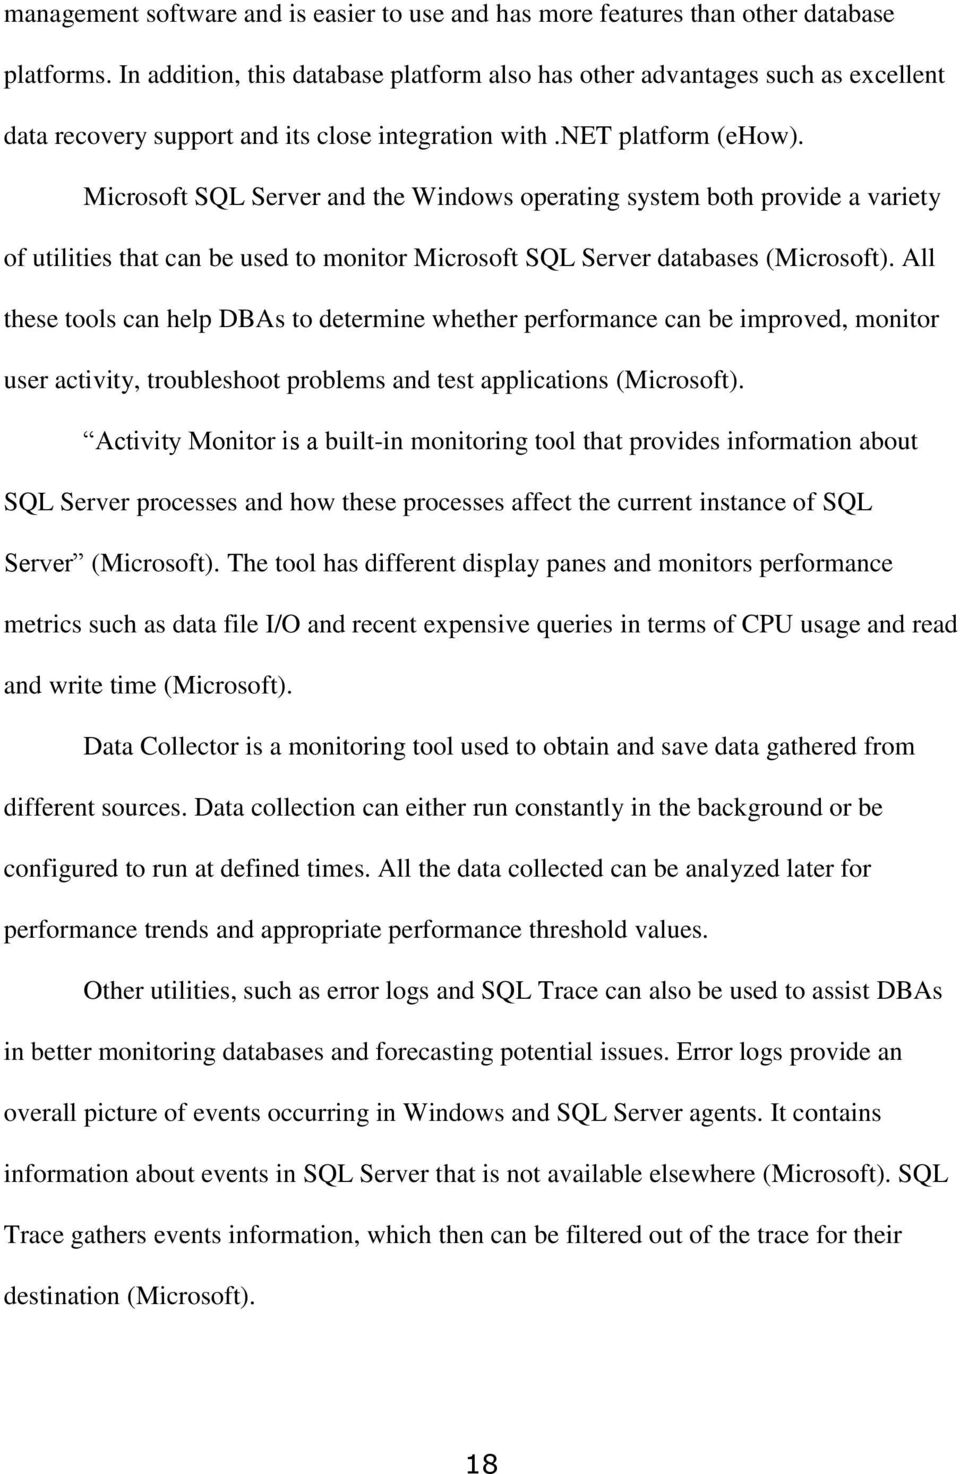 Microsoft SQL Server and the Windows operating system both provide a variety of utilities that can be used to monitor Microsoft SQL Server databases (Microsoft).